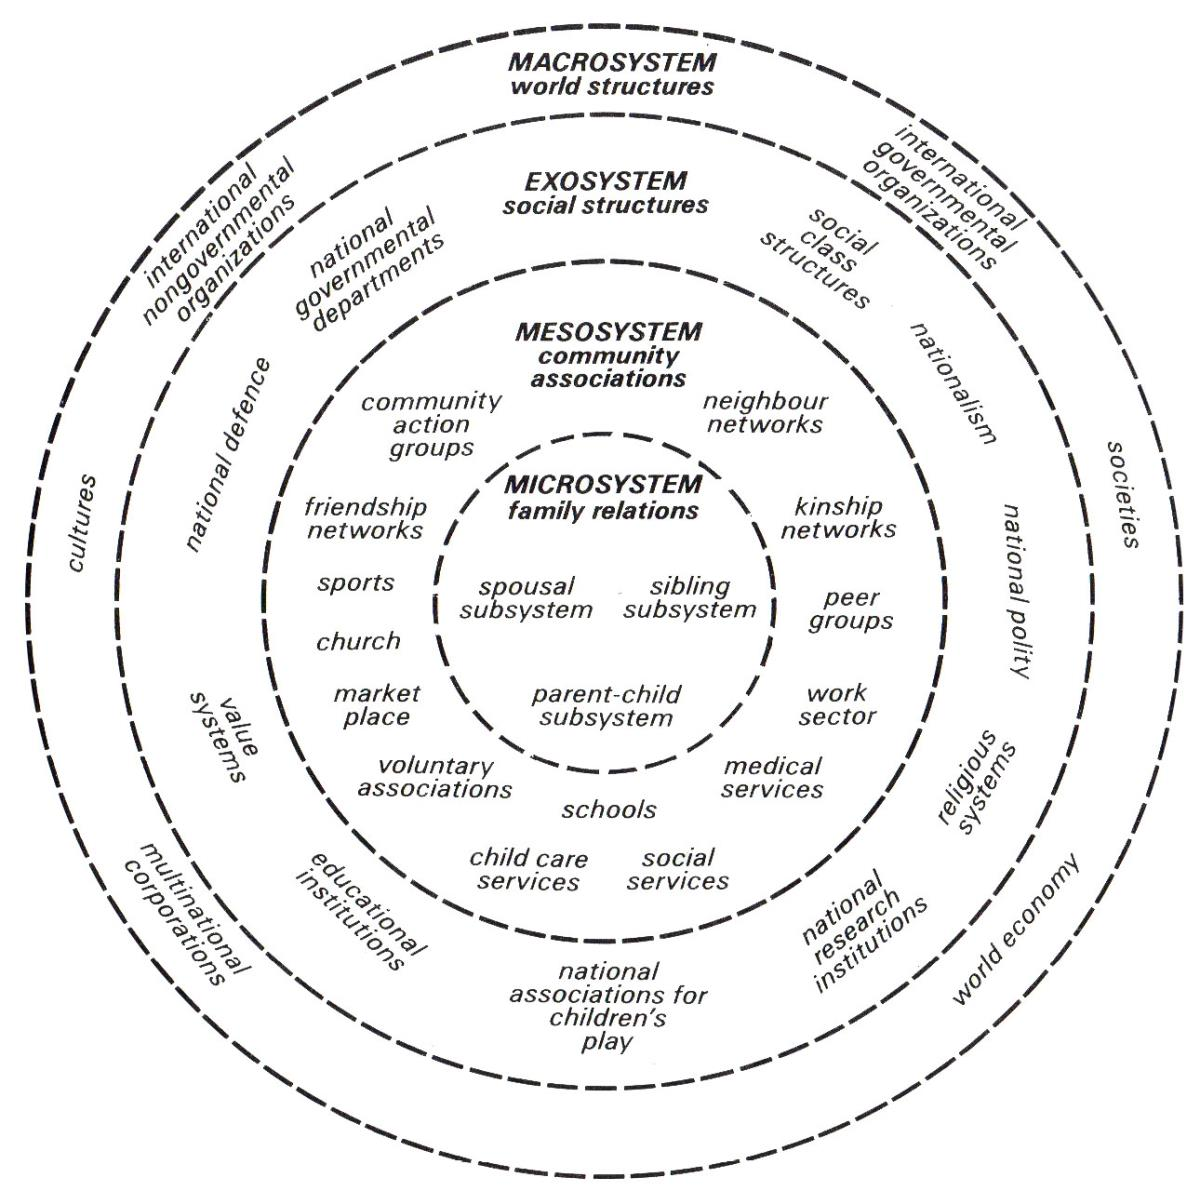 thesis statement on the biecological model of human development Urie bronfenbrenner and child development angela oswalt it was not part of bronfenbrenner's original model a philosophical statement.